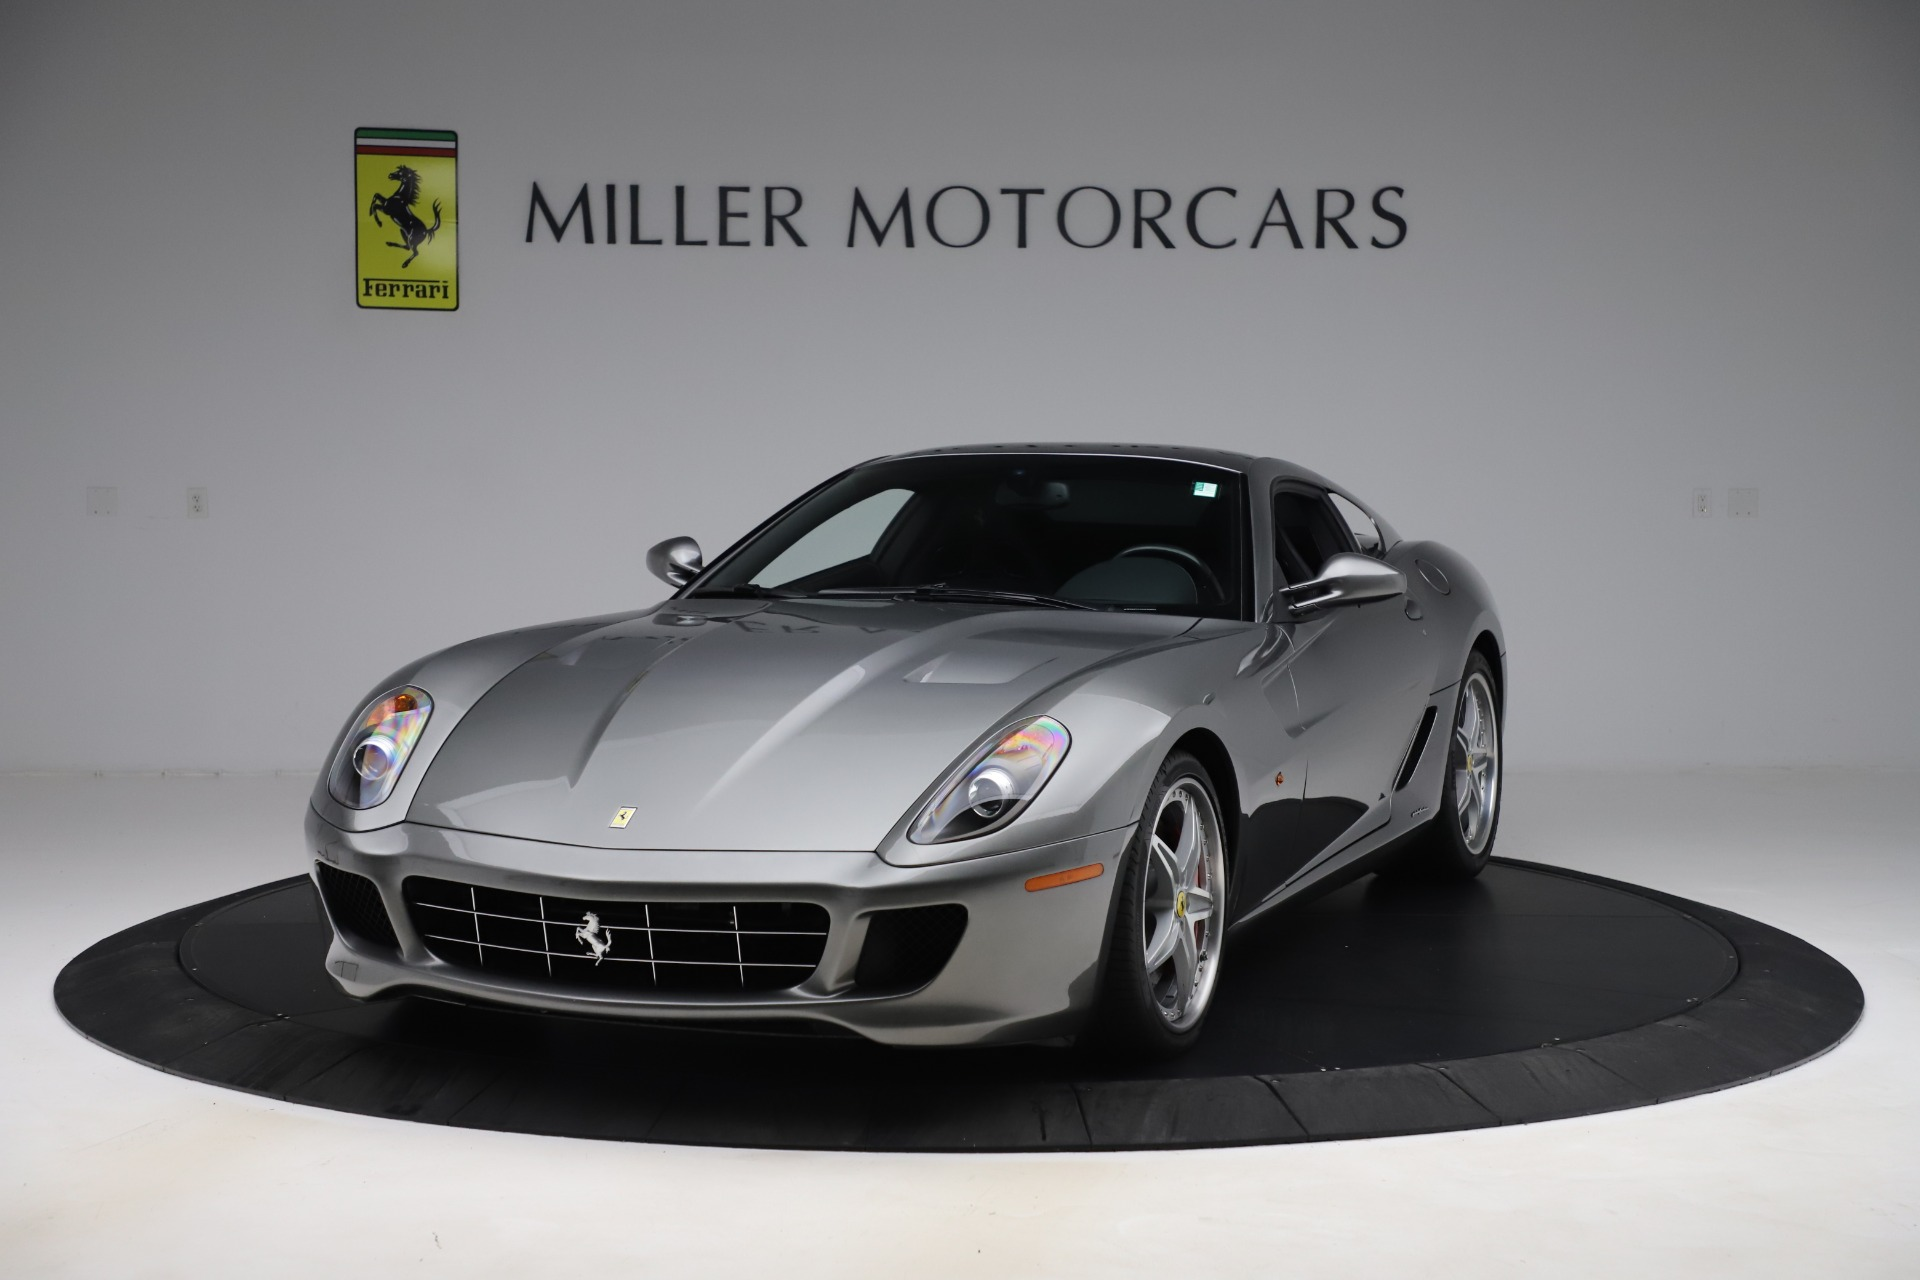 Used 2010 Ferrari 599 GTB Fiorano HGTE for sale Sold at Rolls-Royce Motor Cars Greenwich in Greenwich CT 06830 1